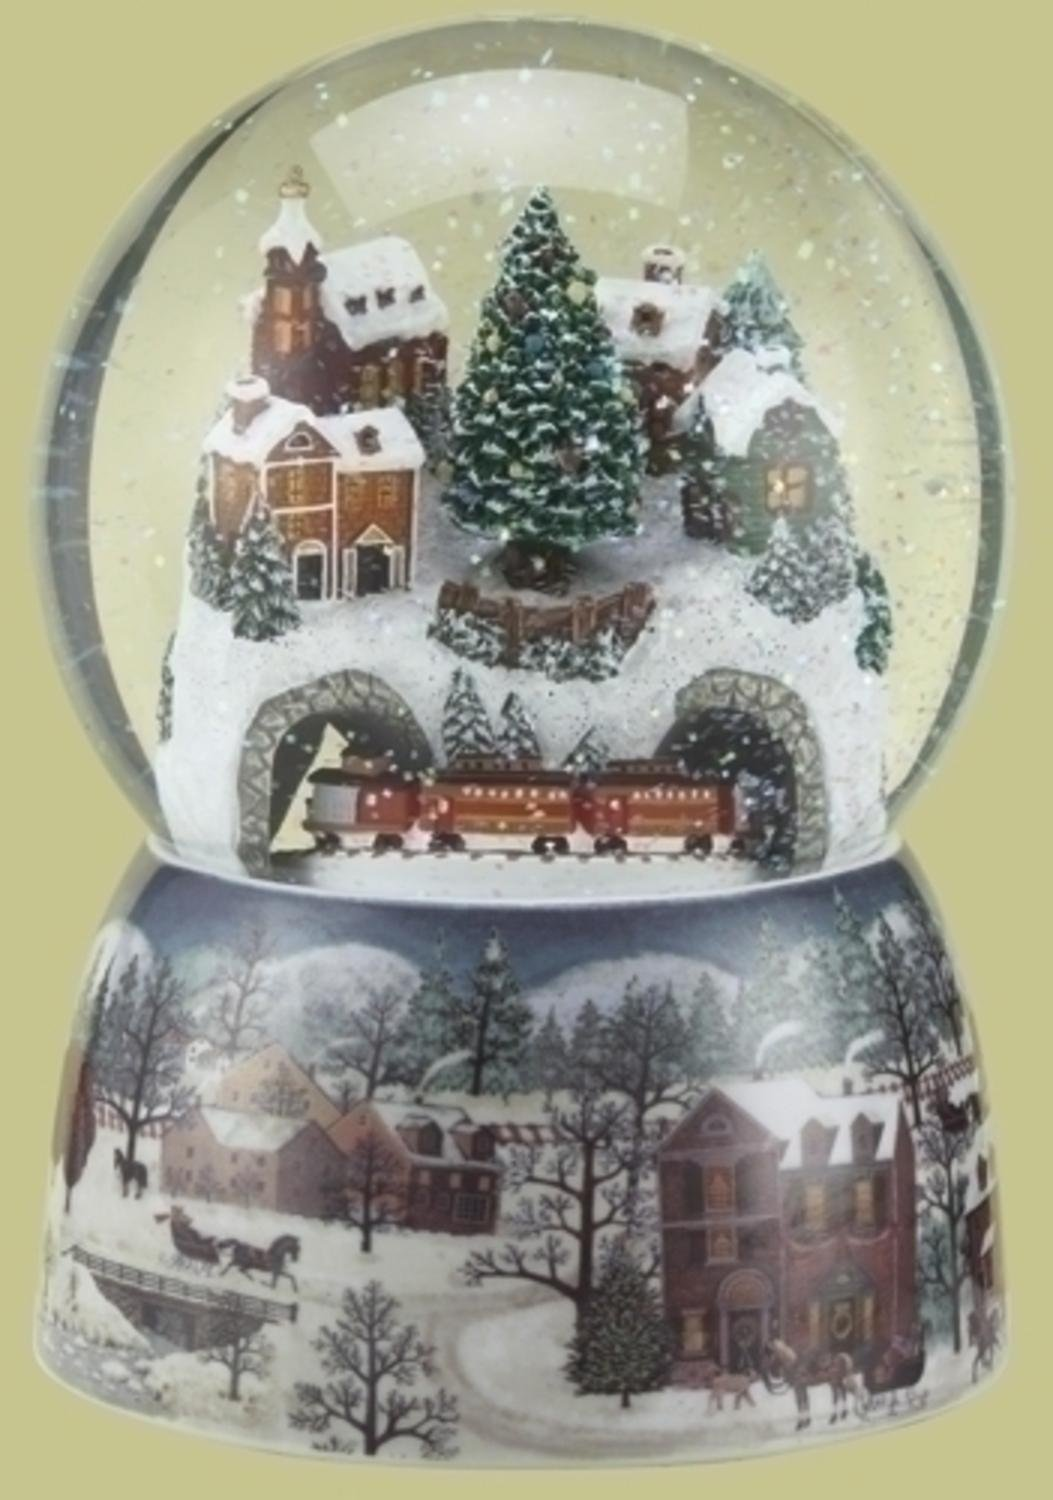 Roman Set of 2 Musical Winter Village Scene with Revolving Train Christmas Glitterdome 6.75''